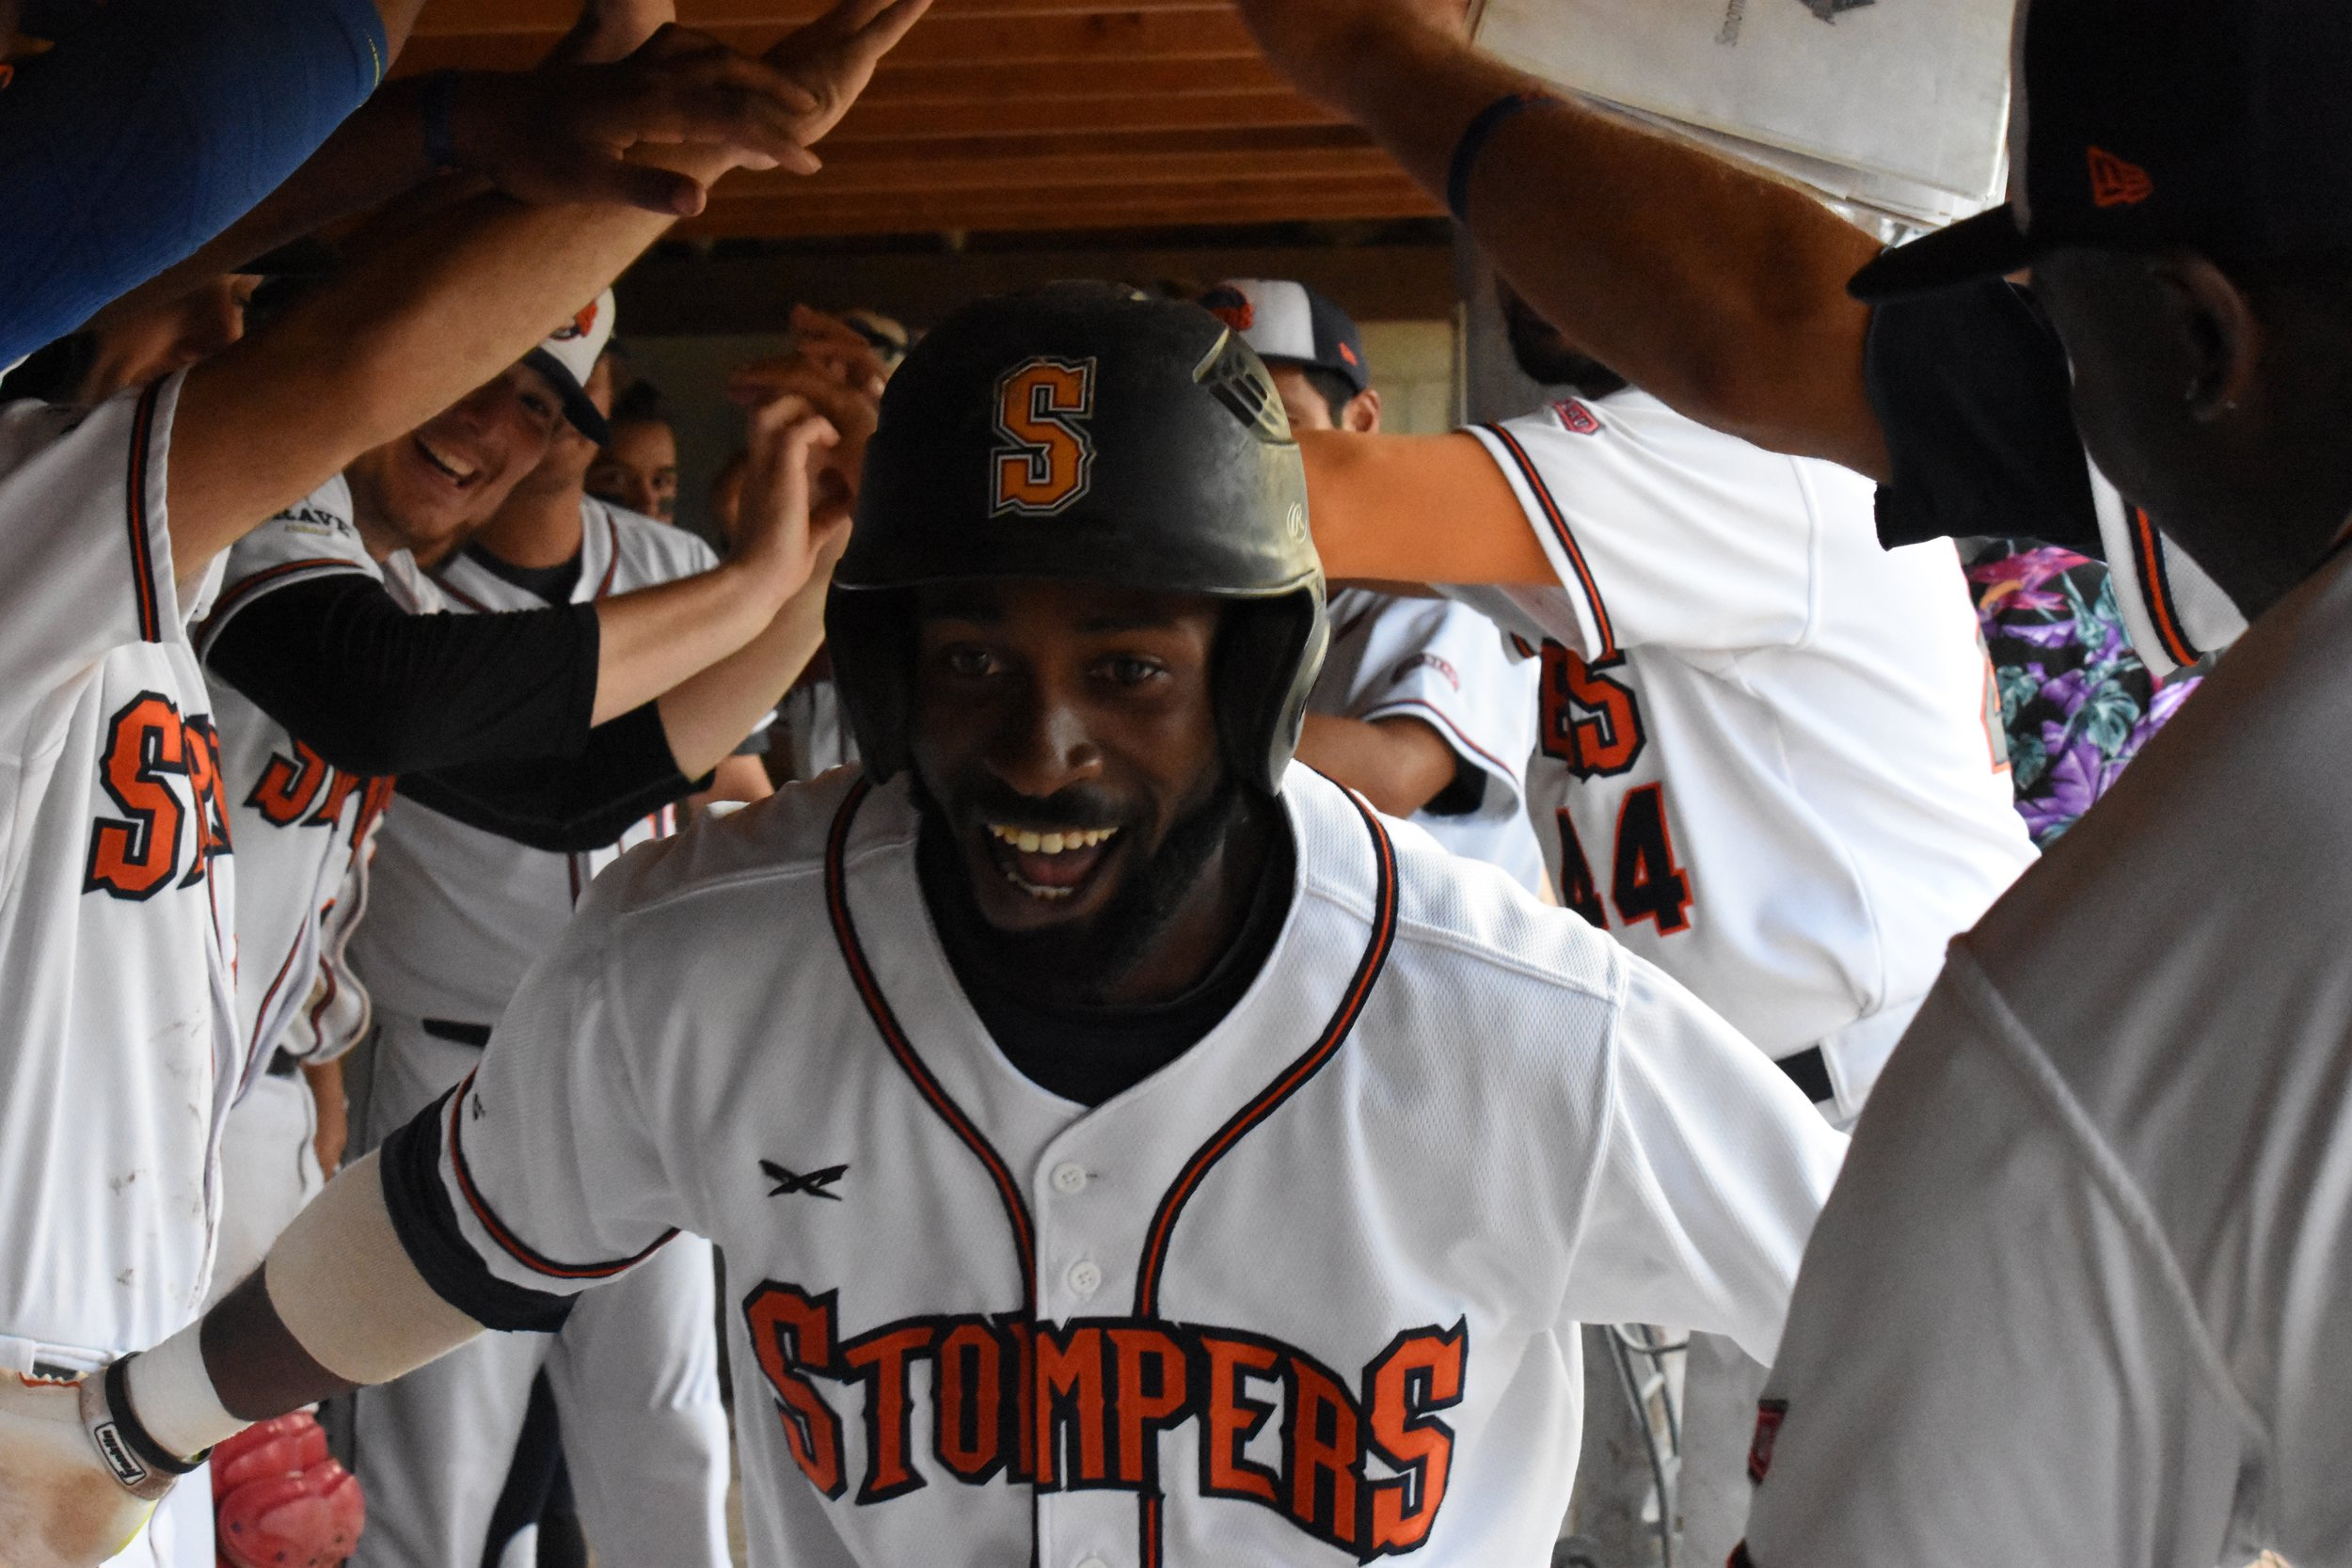 Derrick Fox is greeted with a tunnel in the dugout after hitting a solo home run in the third inning of Wednesday's 7-3 loss to the Vallejo Admirals at Peoples Home Equity Ballpark at Arnold Field. (James W. Toy III / Sonoma Stompers)